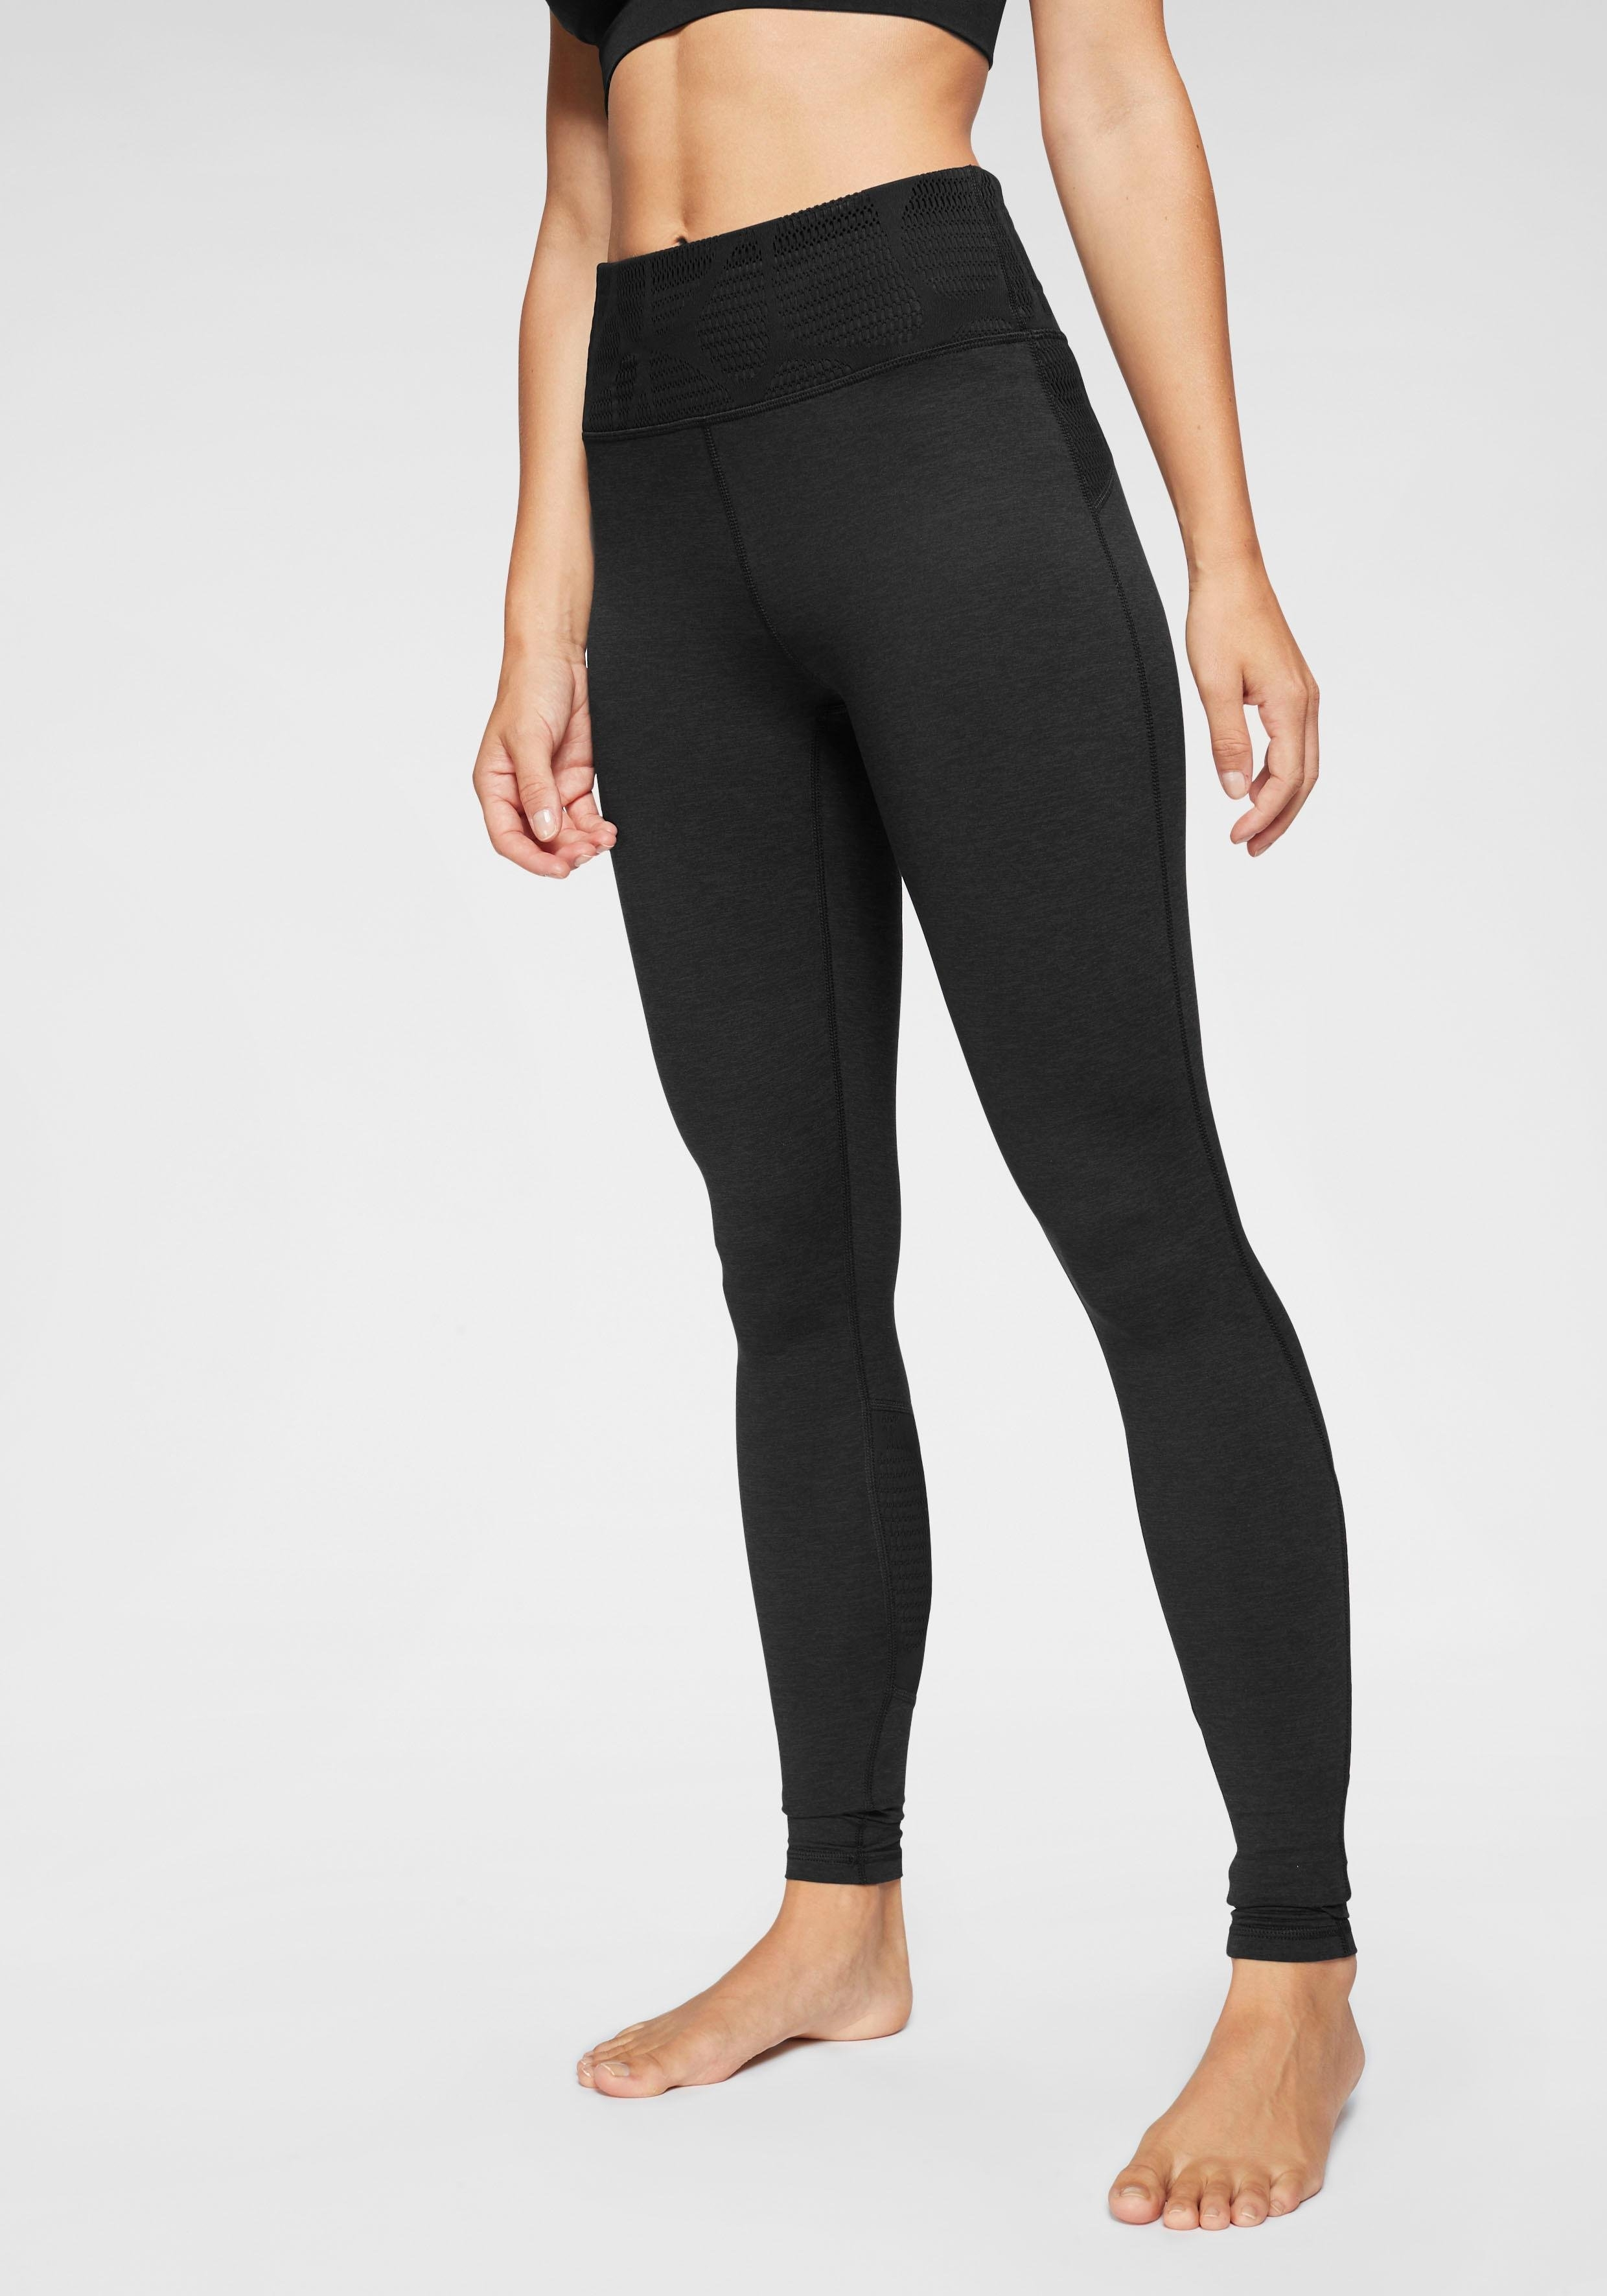 PUMA functionele tights »Studio Lace Eclipse Full Tight« - gratis ruilen op otto.nl